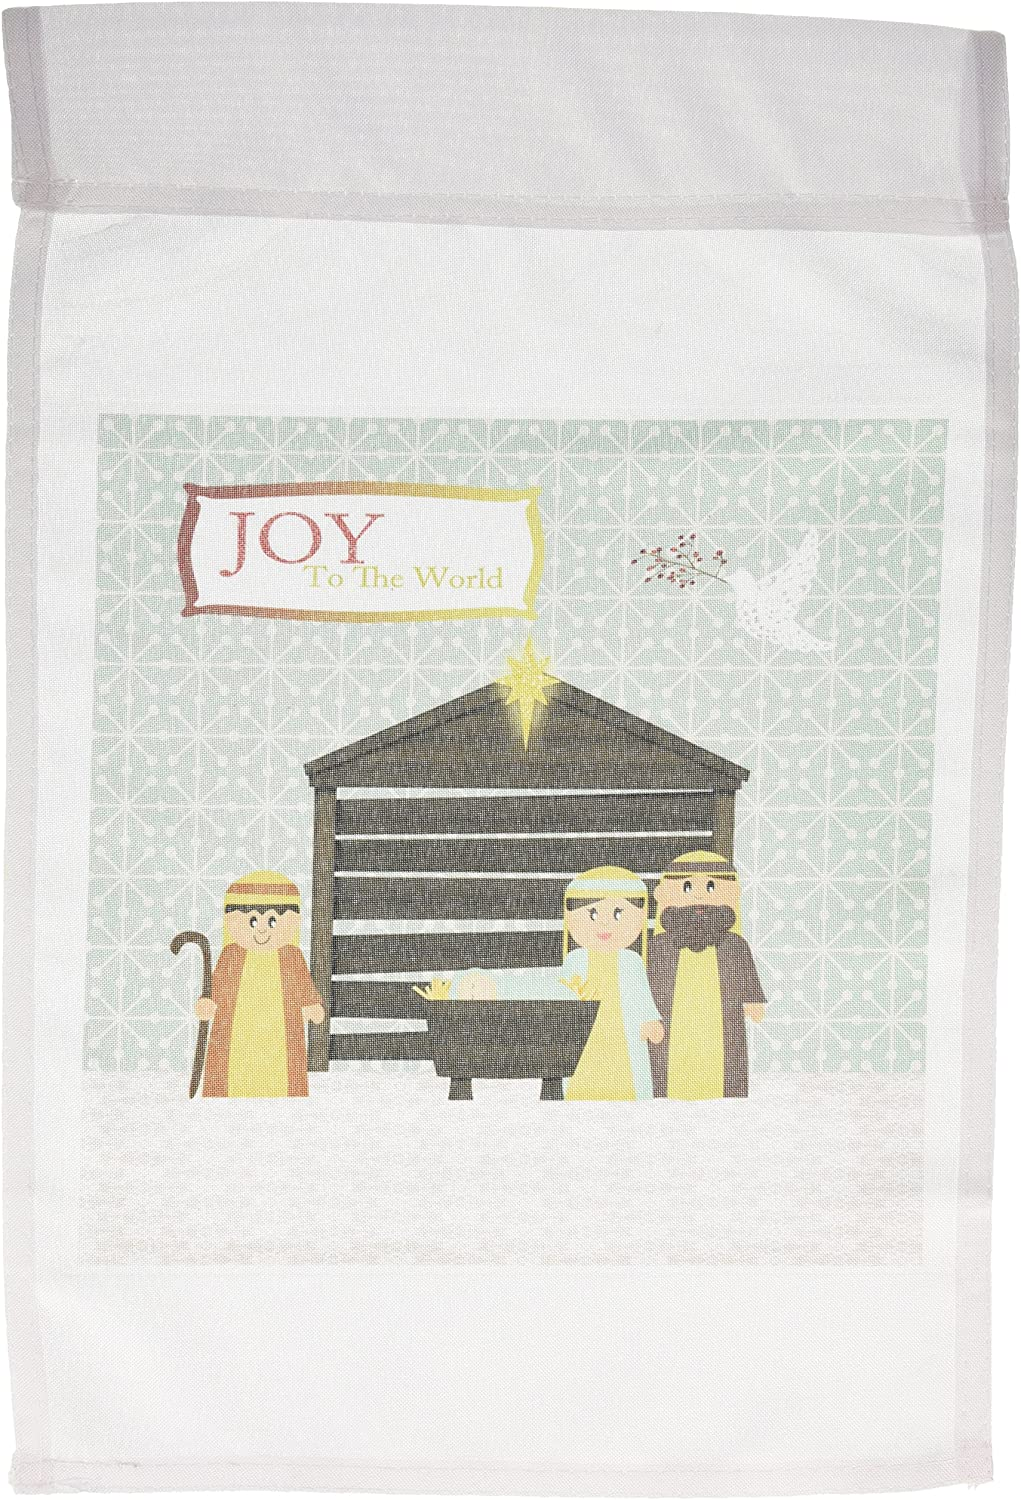 3dRose fl_160049_1 Nativity Scene, Mary, Joseph, Baby Jesus, Manger, Shepherd and Dove, Joy to The World Garden Flag, 12 by 18-Inch